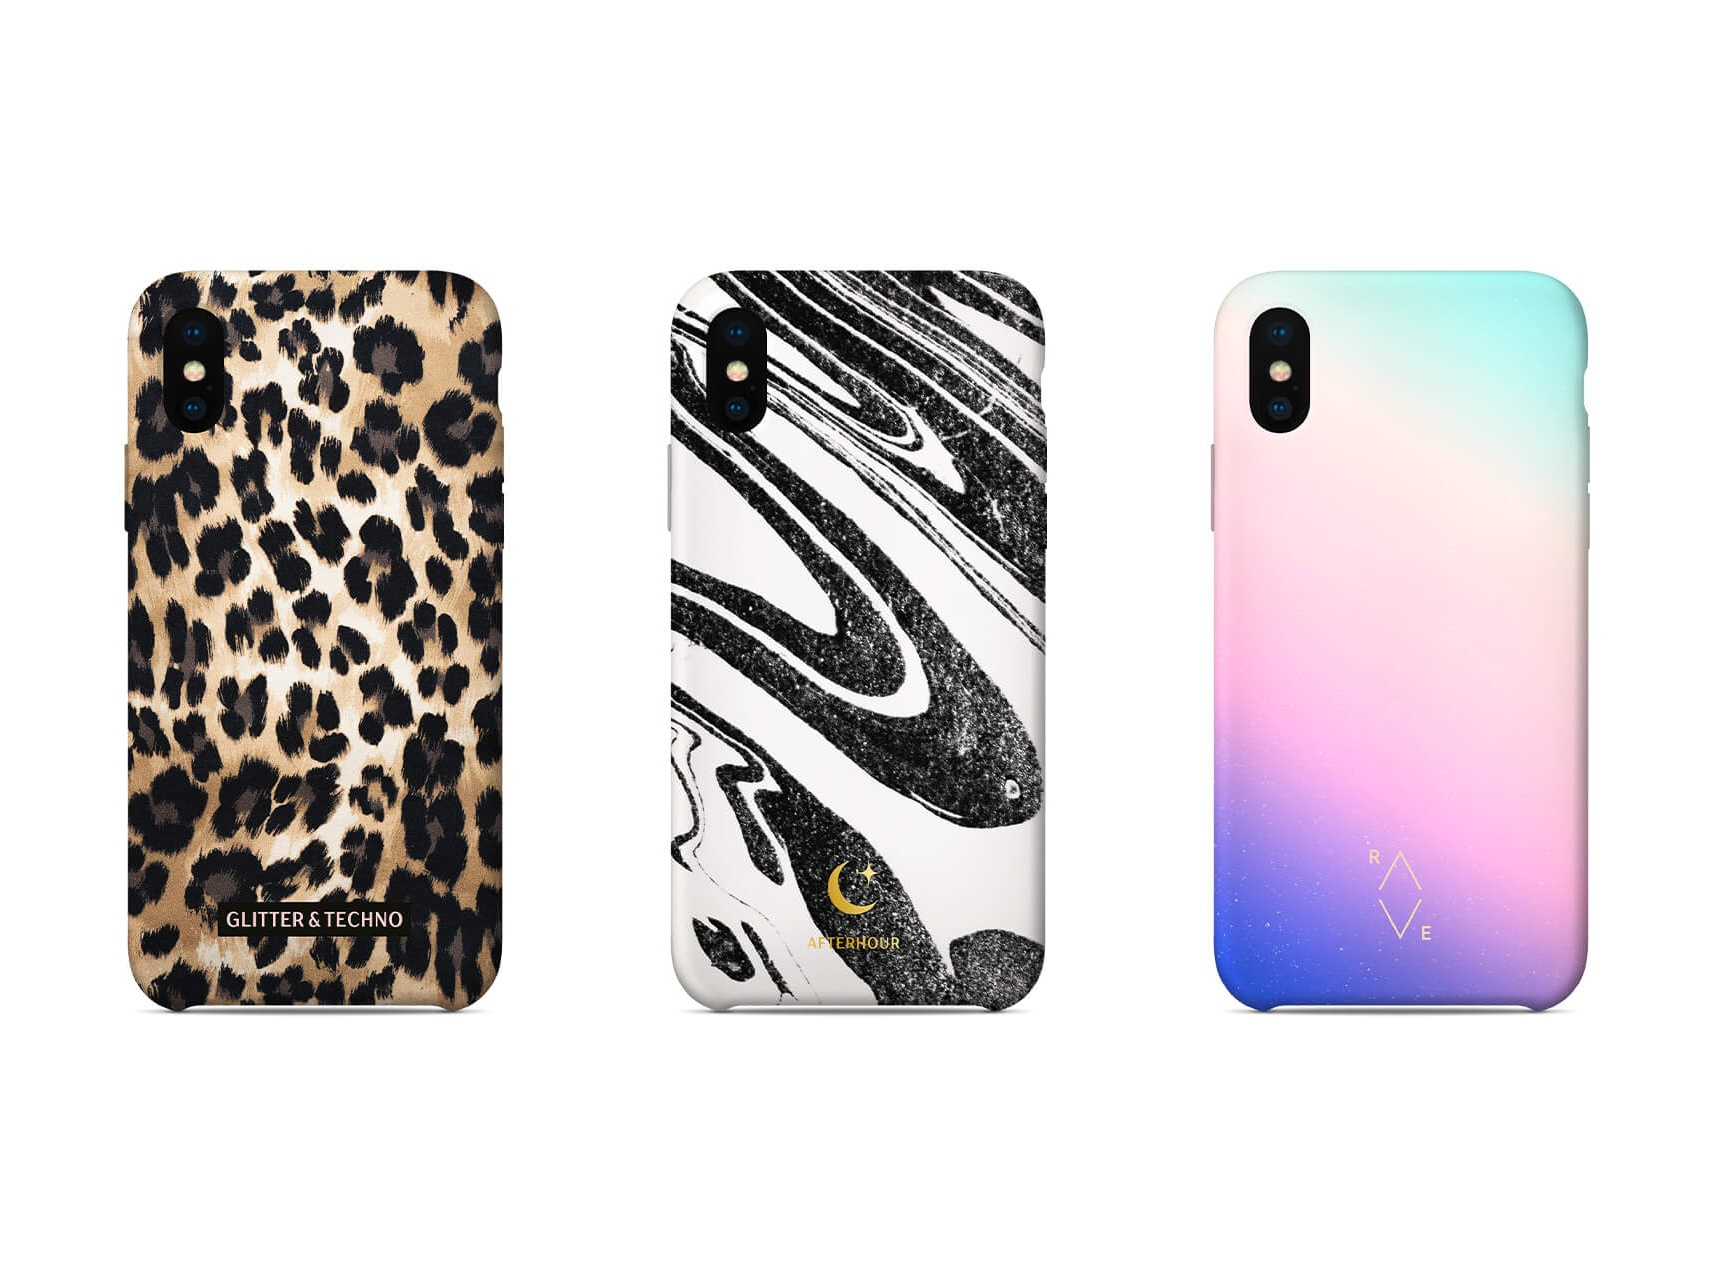 Alexandra linortner packaging phone cases design2